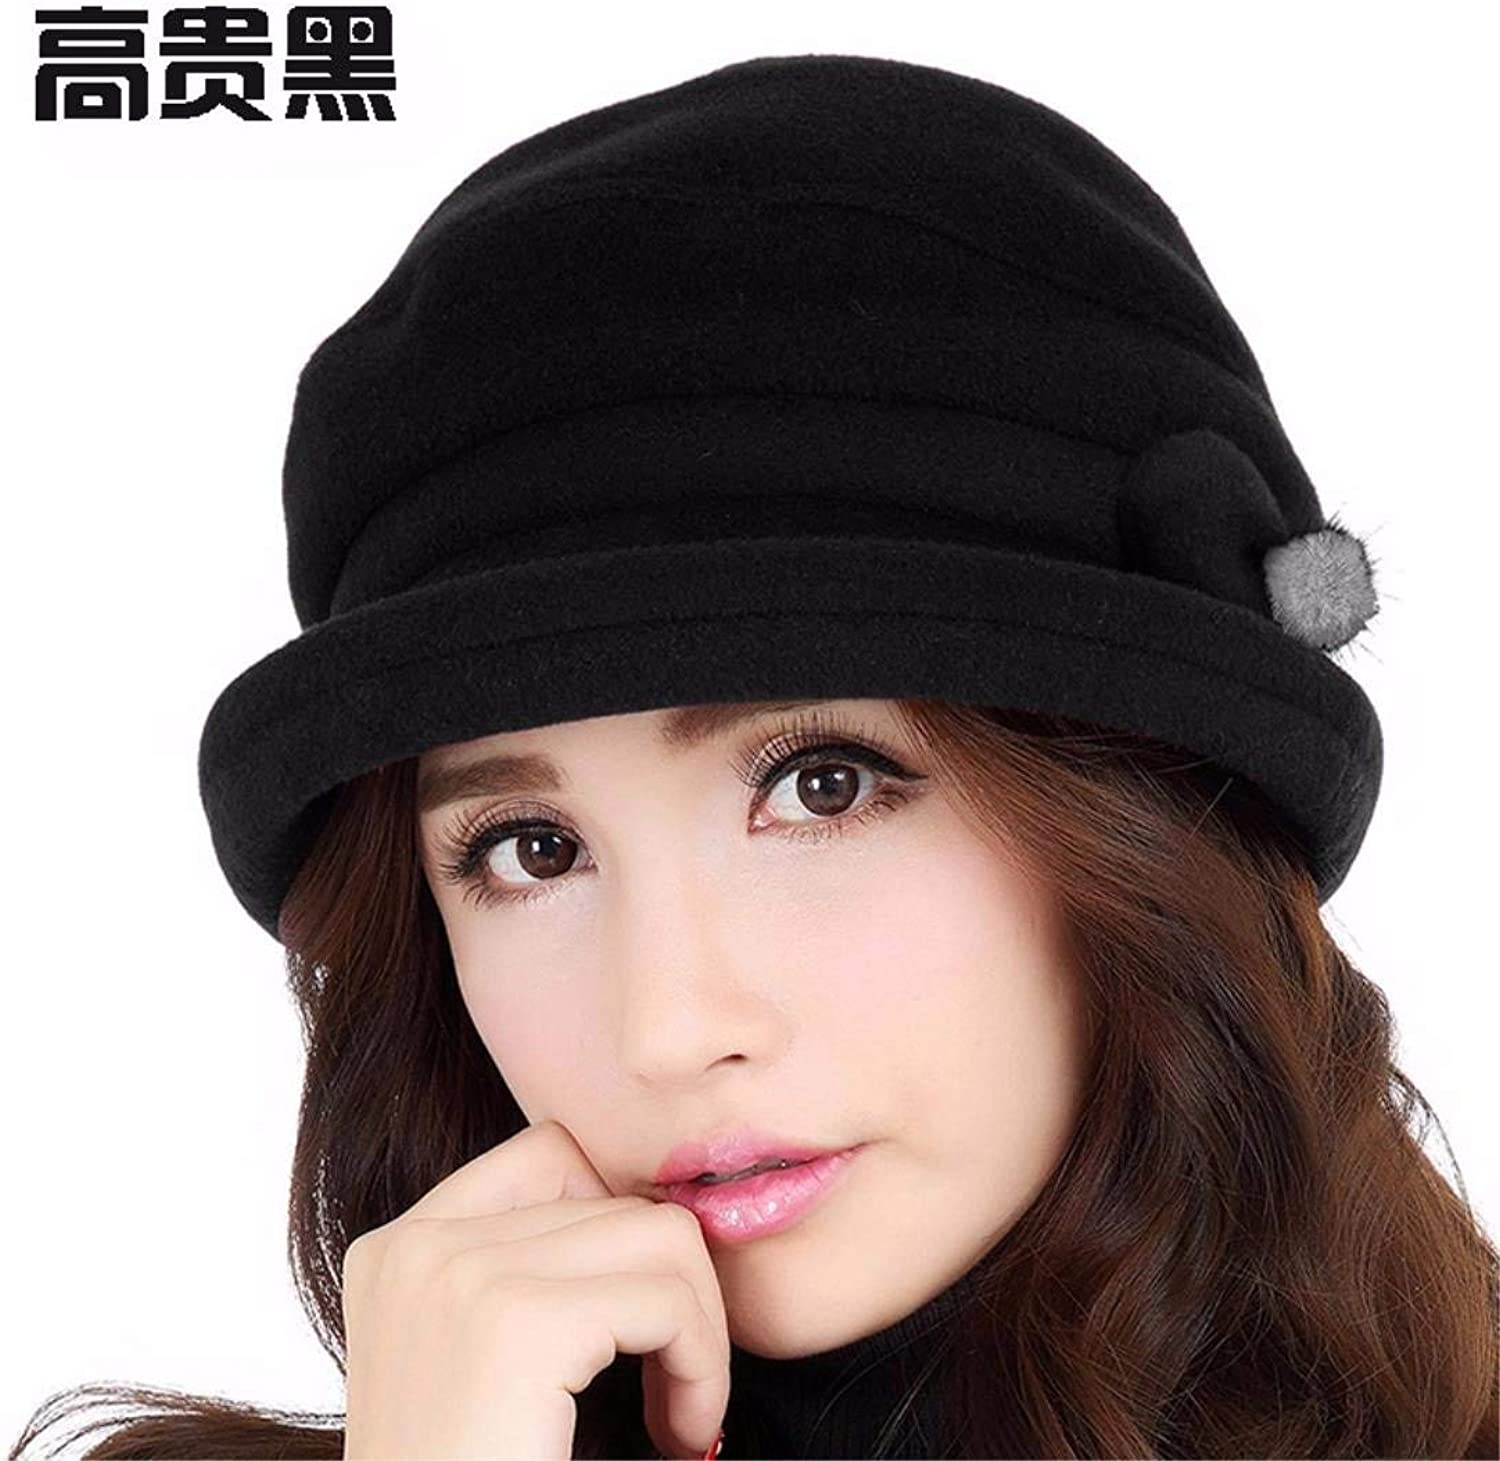 Chuiqingnet The volume of the small gift hats, warm winter and autumn Bailey English style WINTER HAT